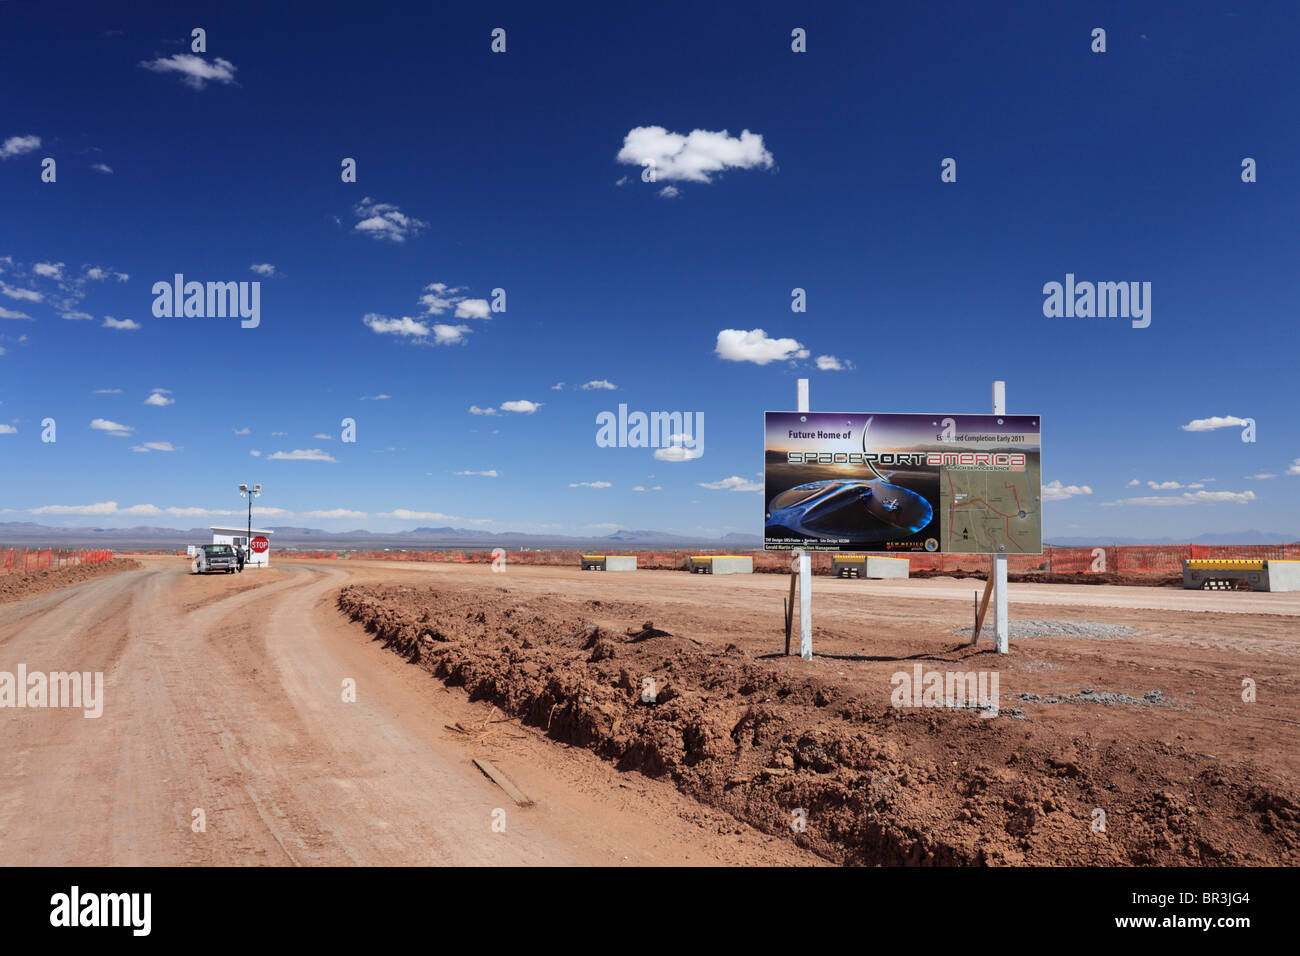 General view of the entrance to Spaceport America, a commercial spaceport under construction in rural New Mexico. - Stock Image